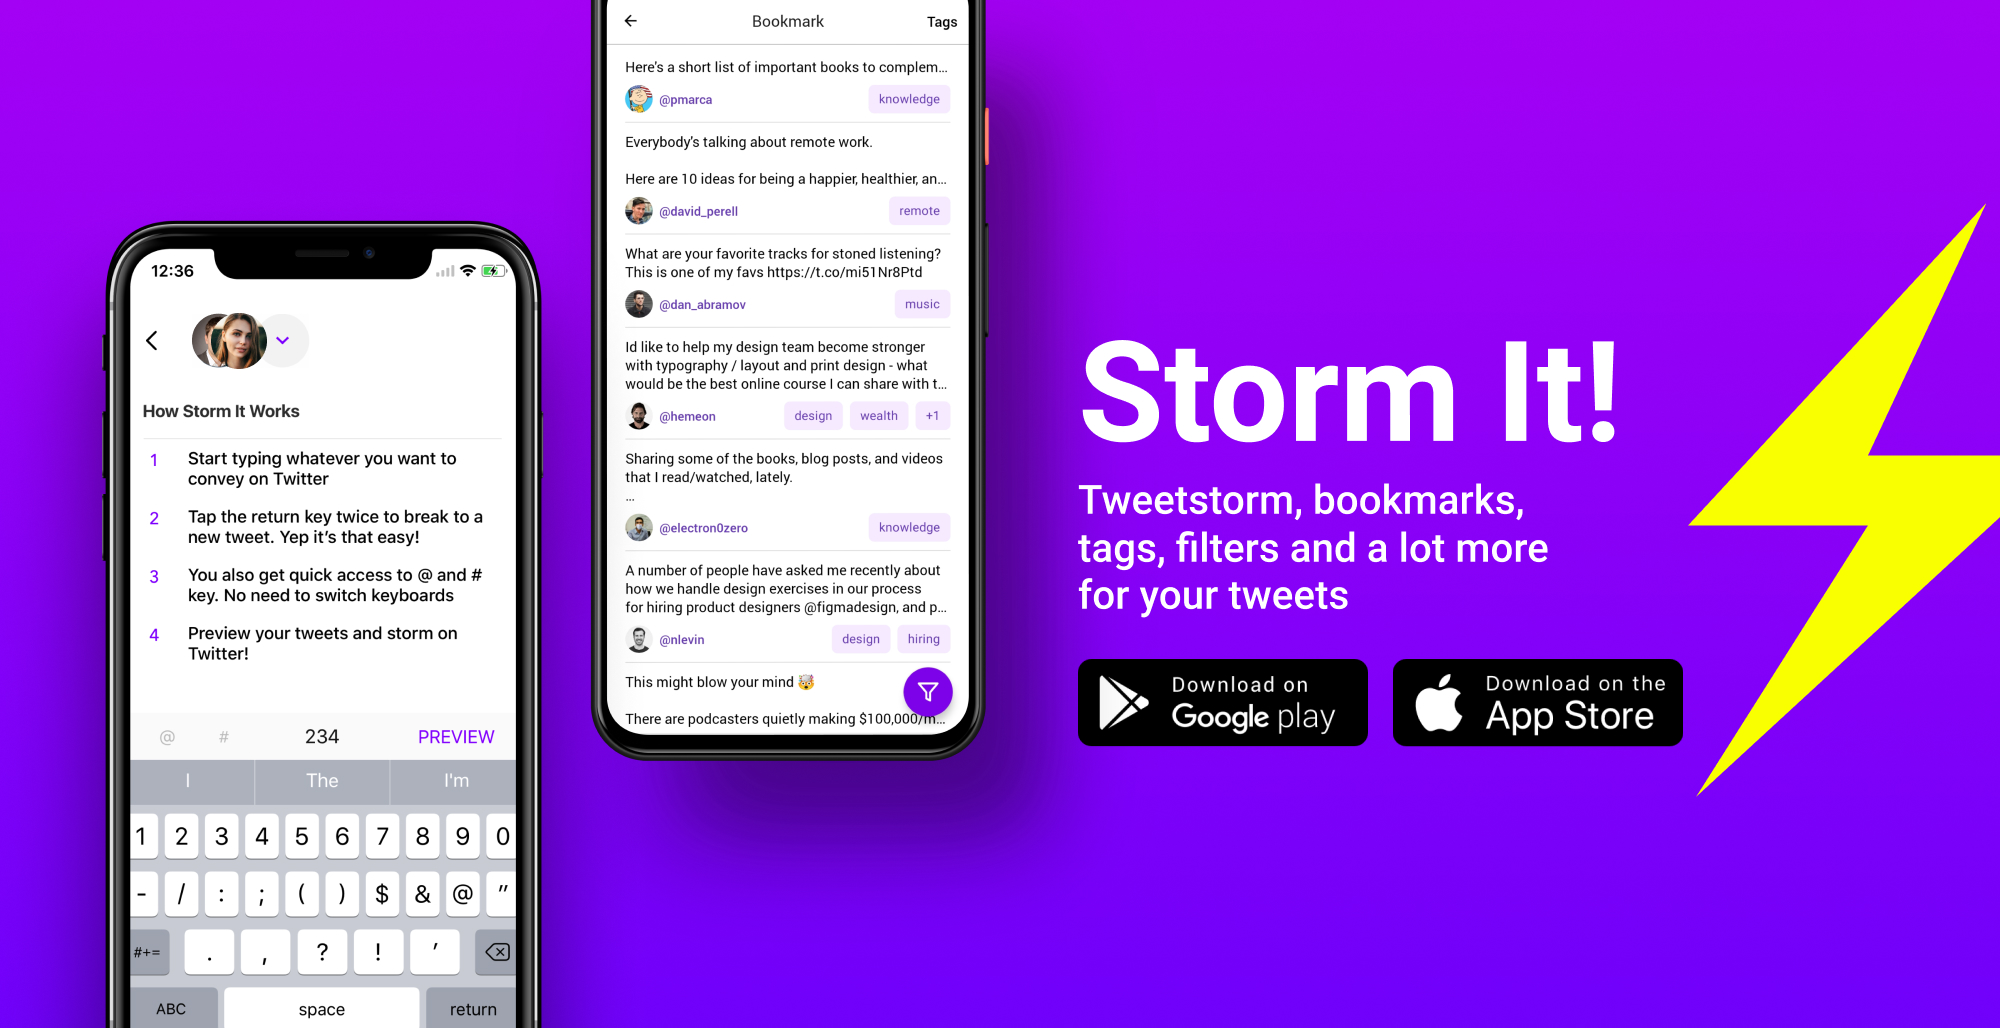 Storm it for iOS and Android - Tweetstorm, unroll tweets, unroll threads, bookmark tweets, add tags to tweets